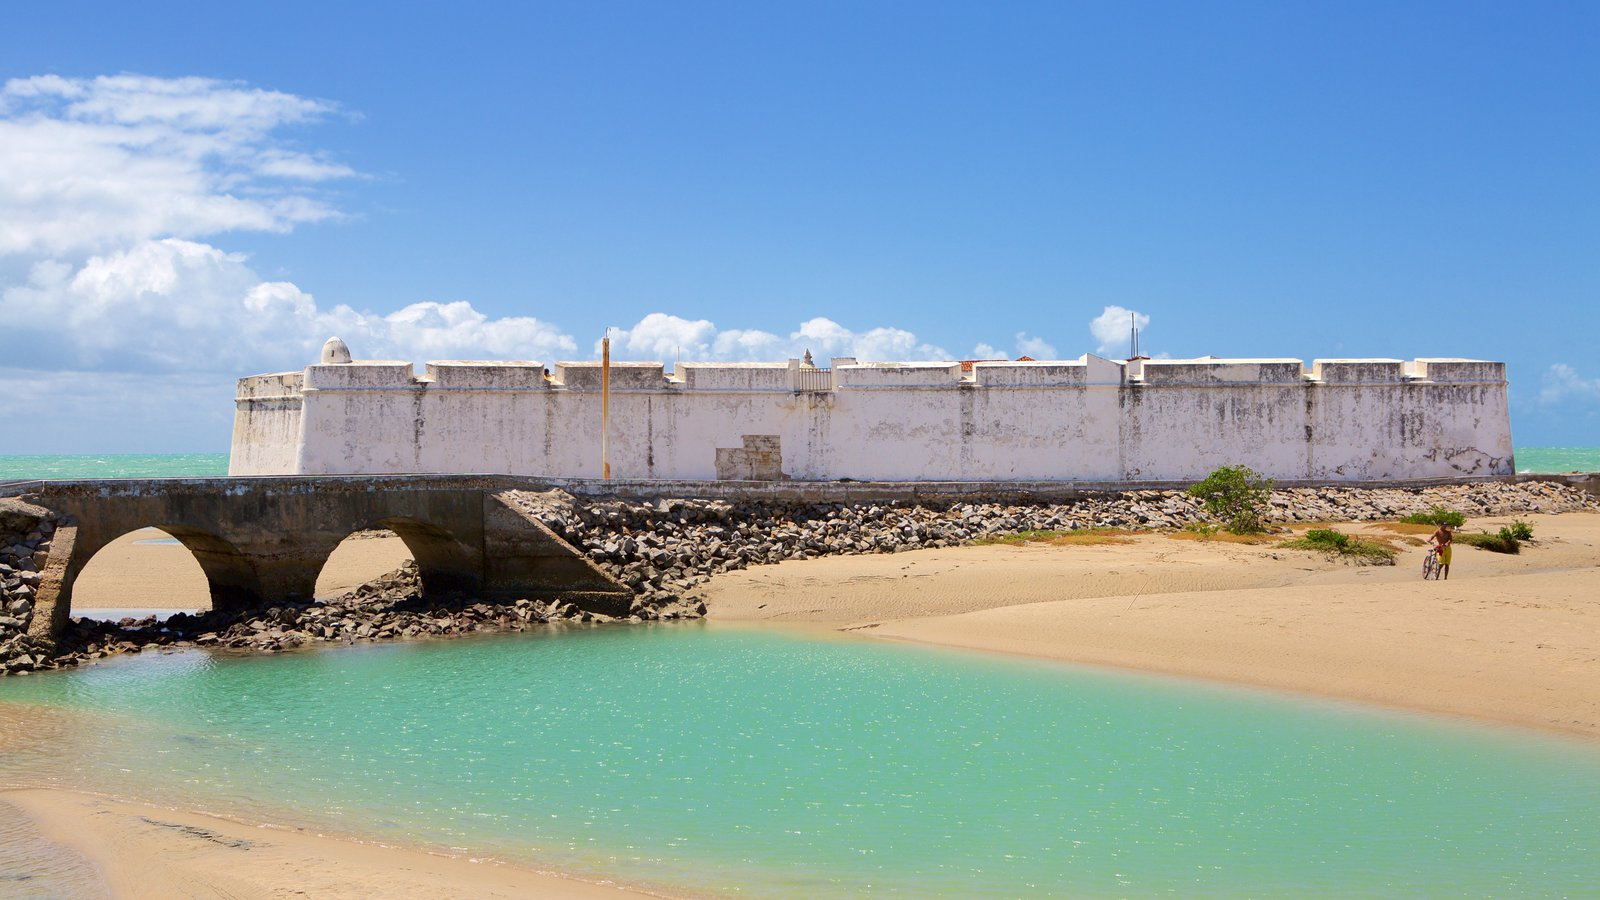 Fort of the Three Kings showing a beach, general coastal views and heritage elements